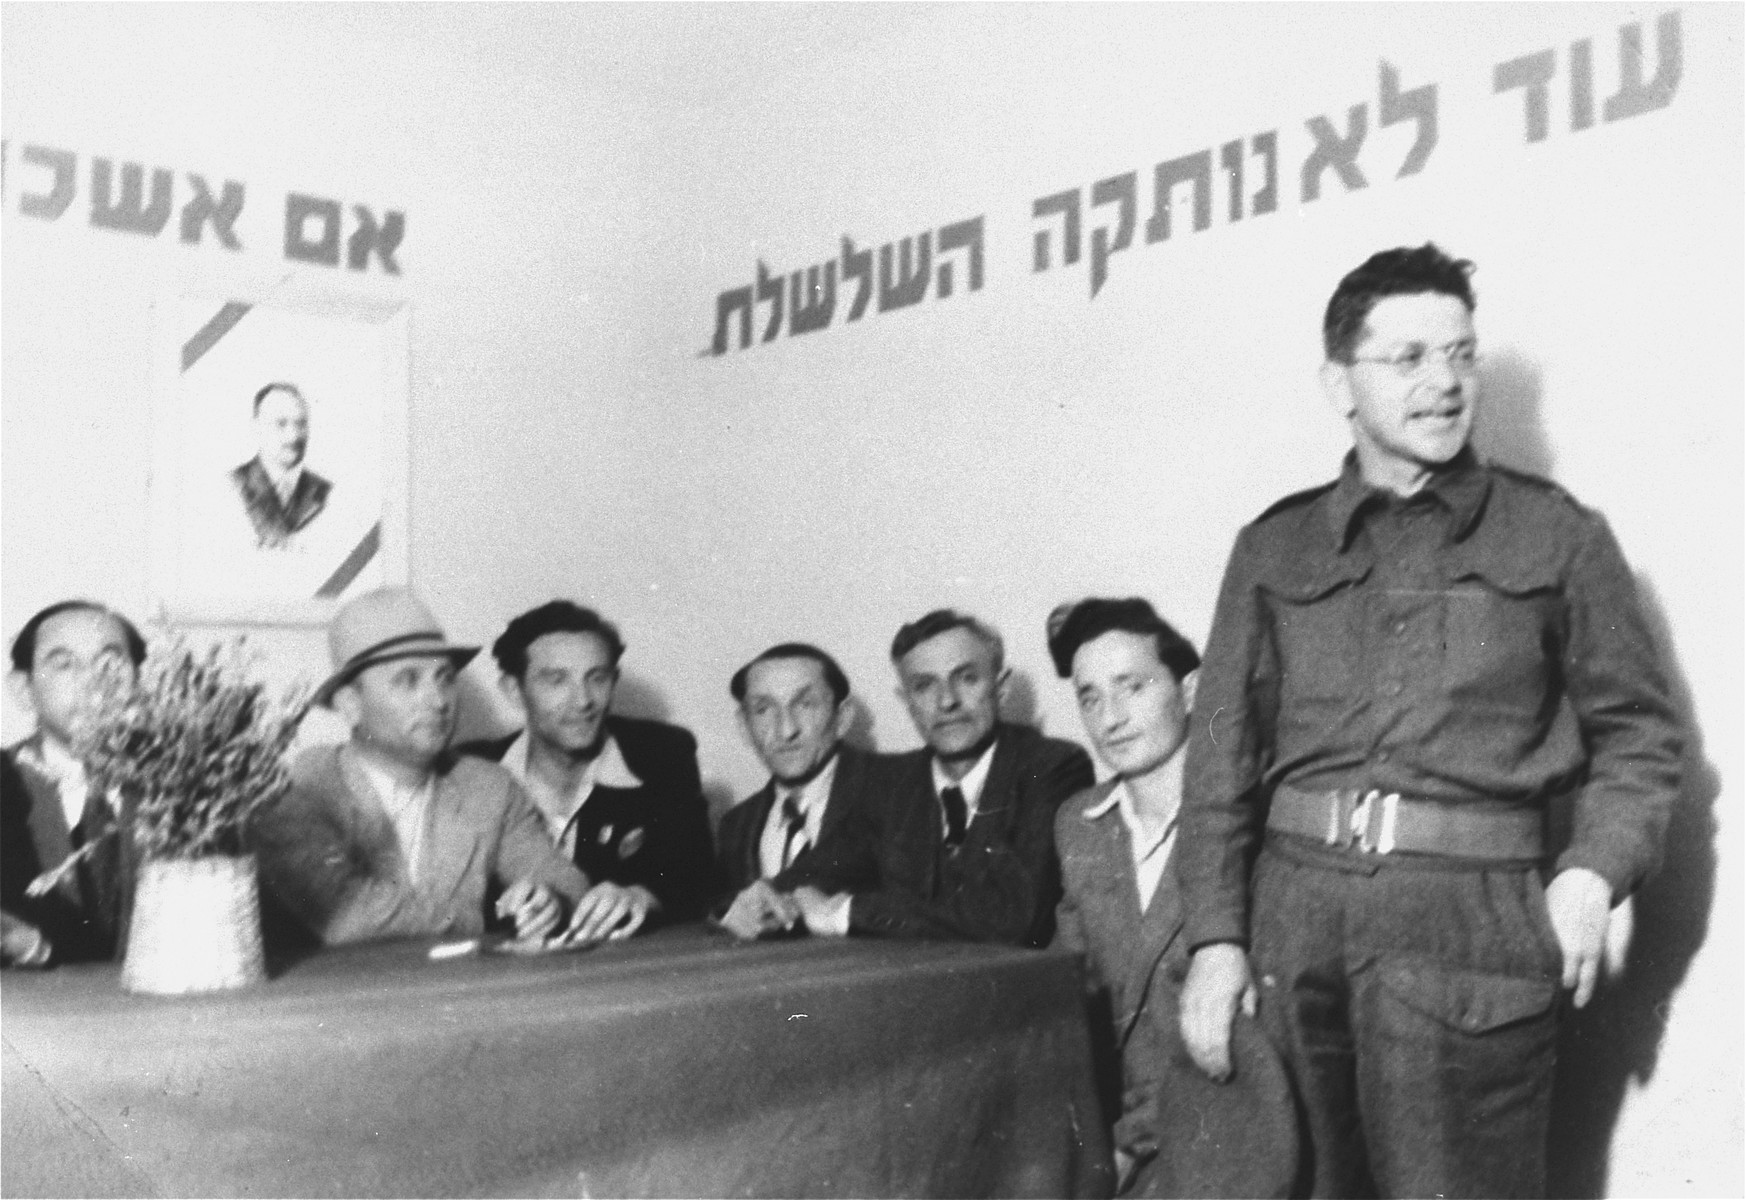 An unidentified man addresses the audience in a Zionist meeting in the Zeilsheim displaced persons' camp.